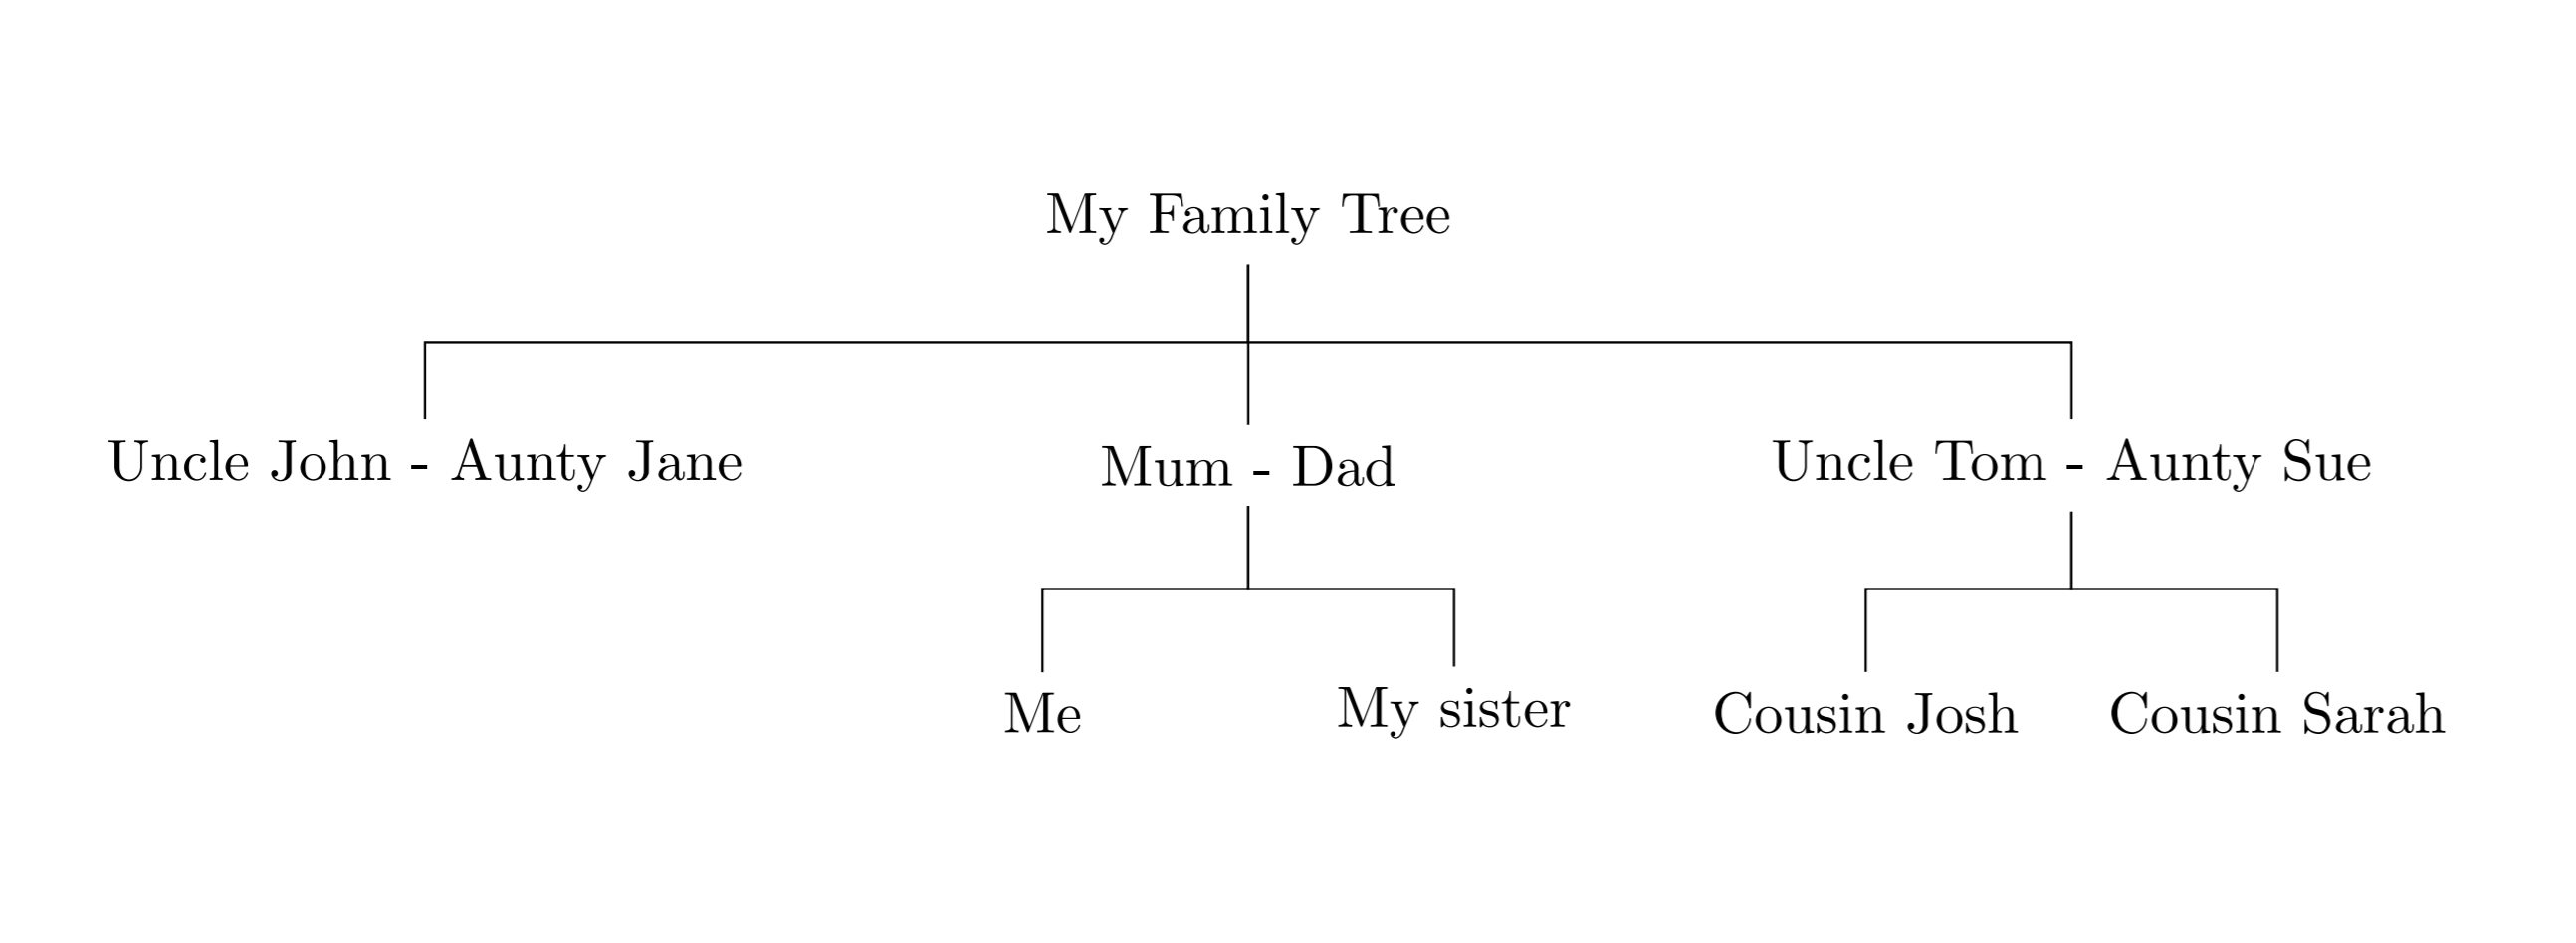 Simple template for creating a Family Tree